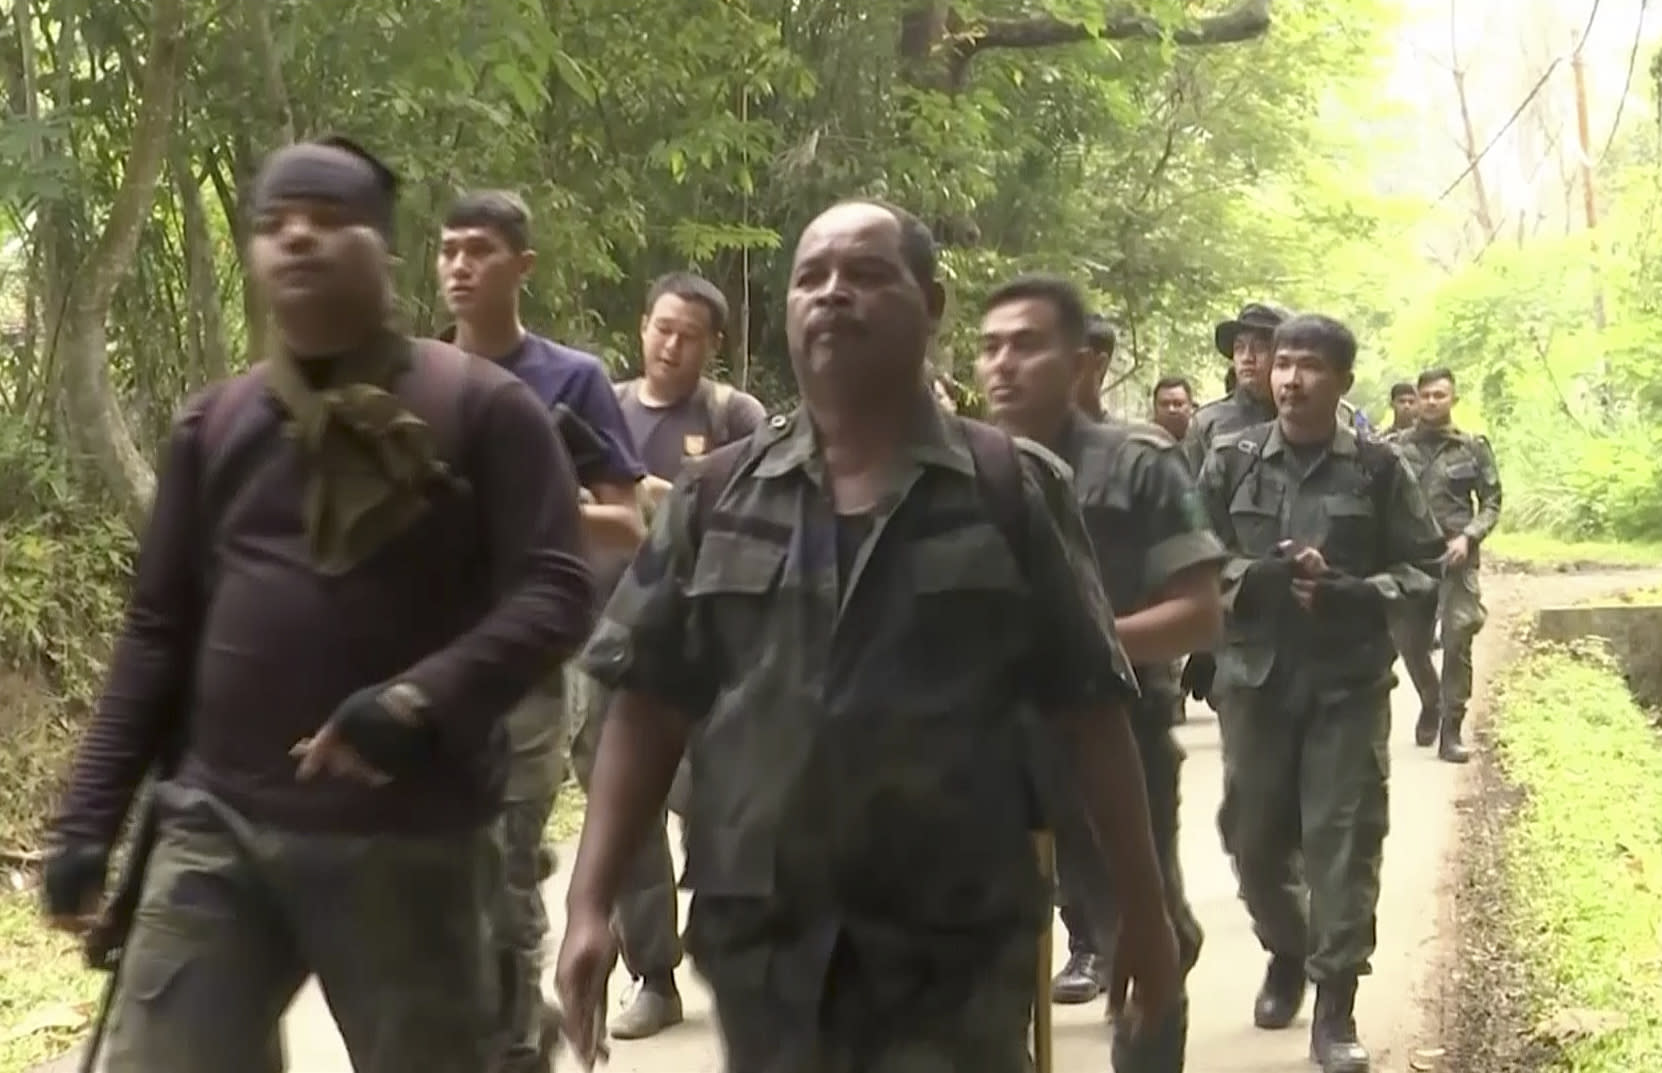 In this image from a video, rescuers walk in plantation as they conduct a search and rescue operation for a missing British girl at a forest in Seremban, Malaysia Tuesday, Aug. 13, 2019. Malaysian police say rescuers have found the body of a Caucasian female in the forest surrounding a nature resort where a 15-year-old London girl was reported missing more than a week ago. State police chief says officials are in the process of determining whether the body, which was found on Tuesday, is Nora Anne Quoirin. (AP Photo)